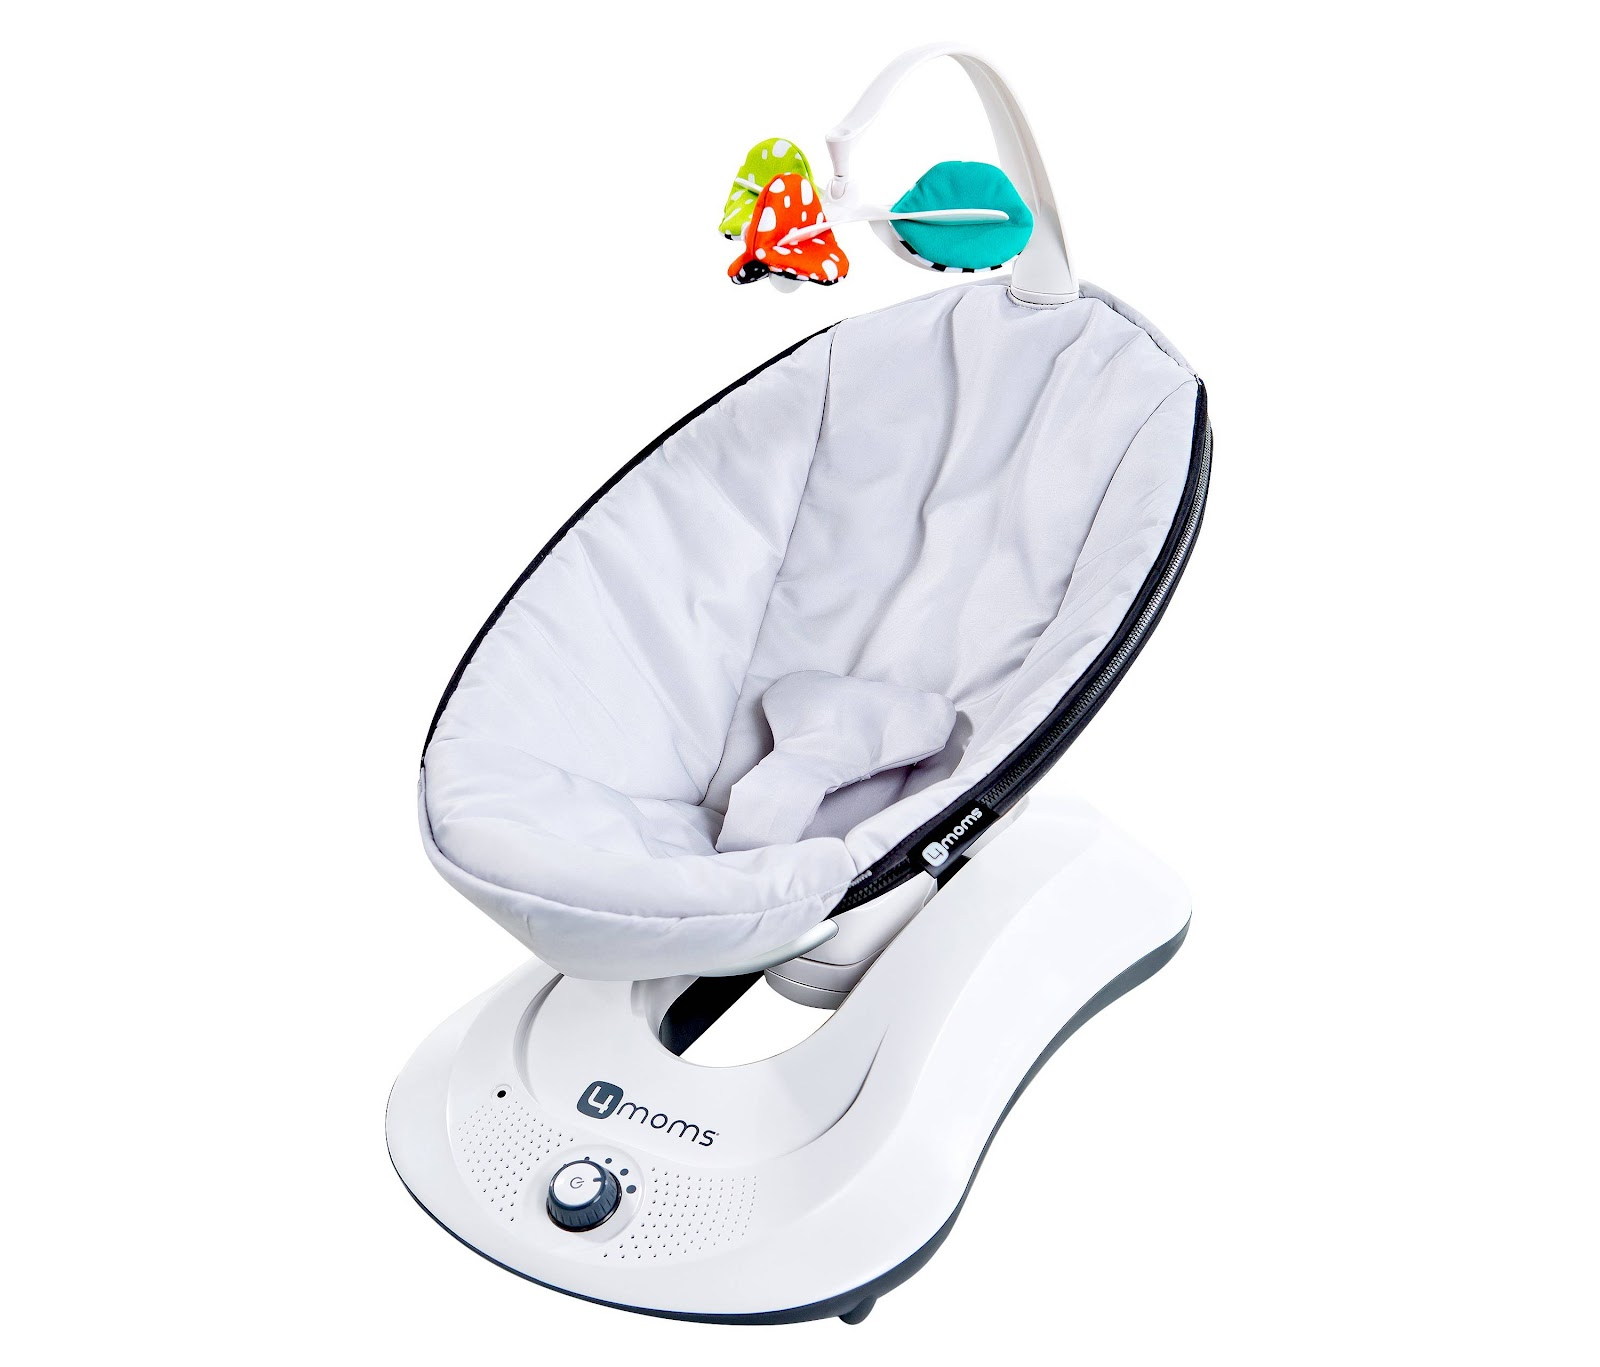 4moms rockaRoo Infant Swing